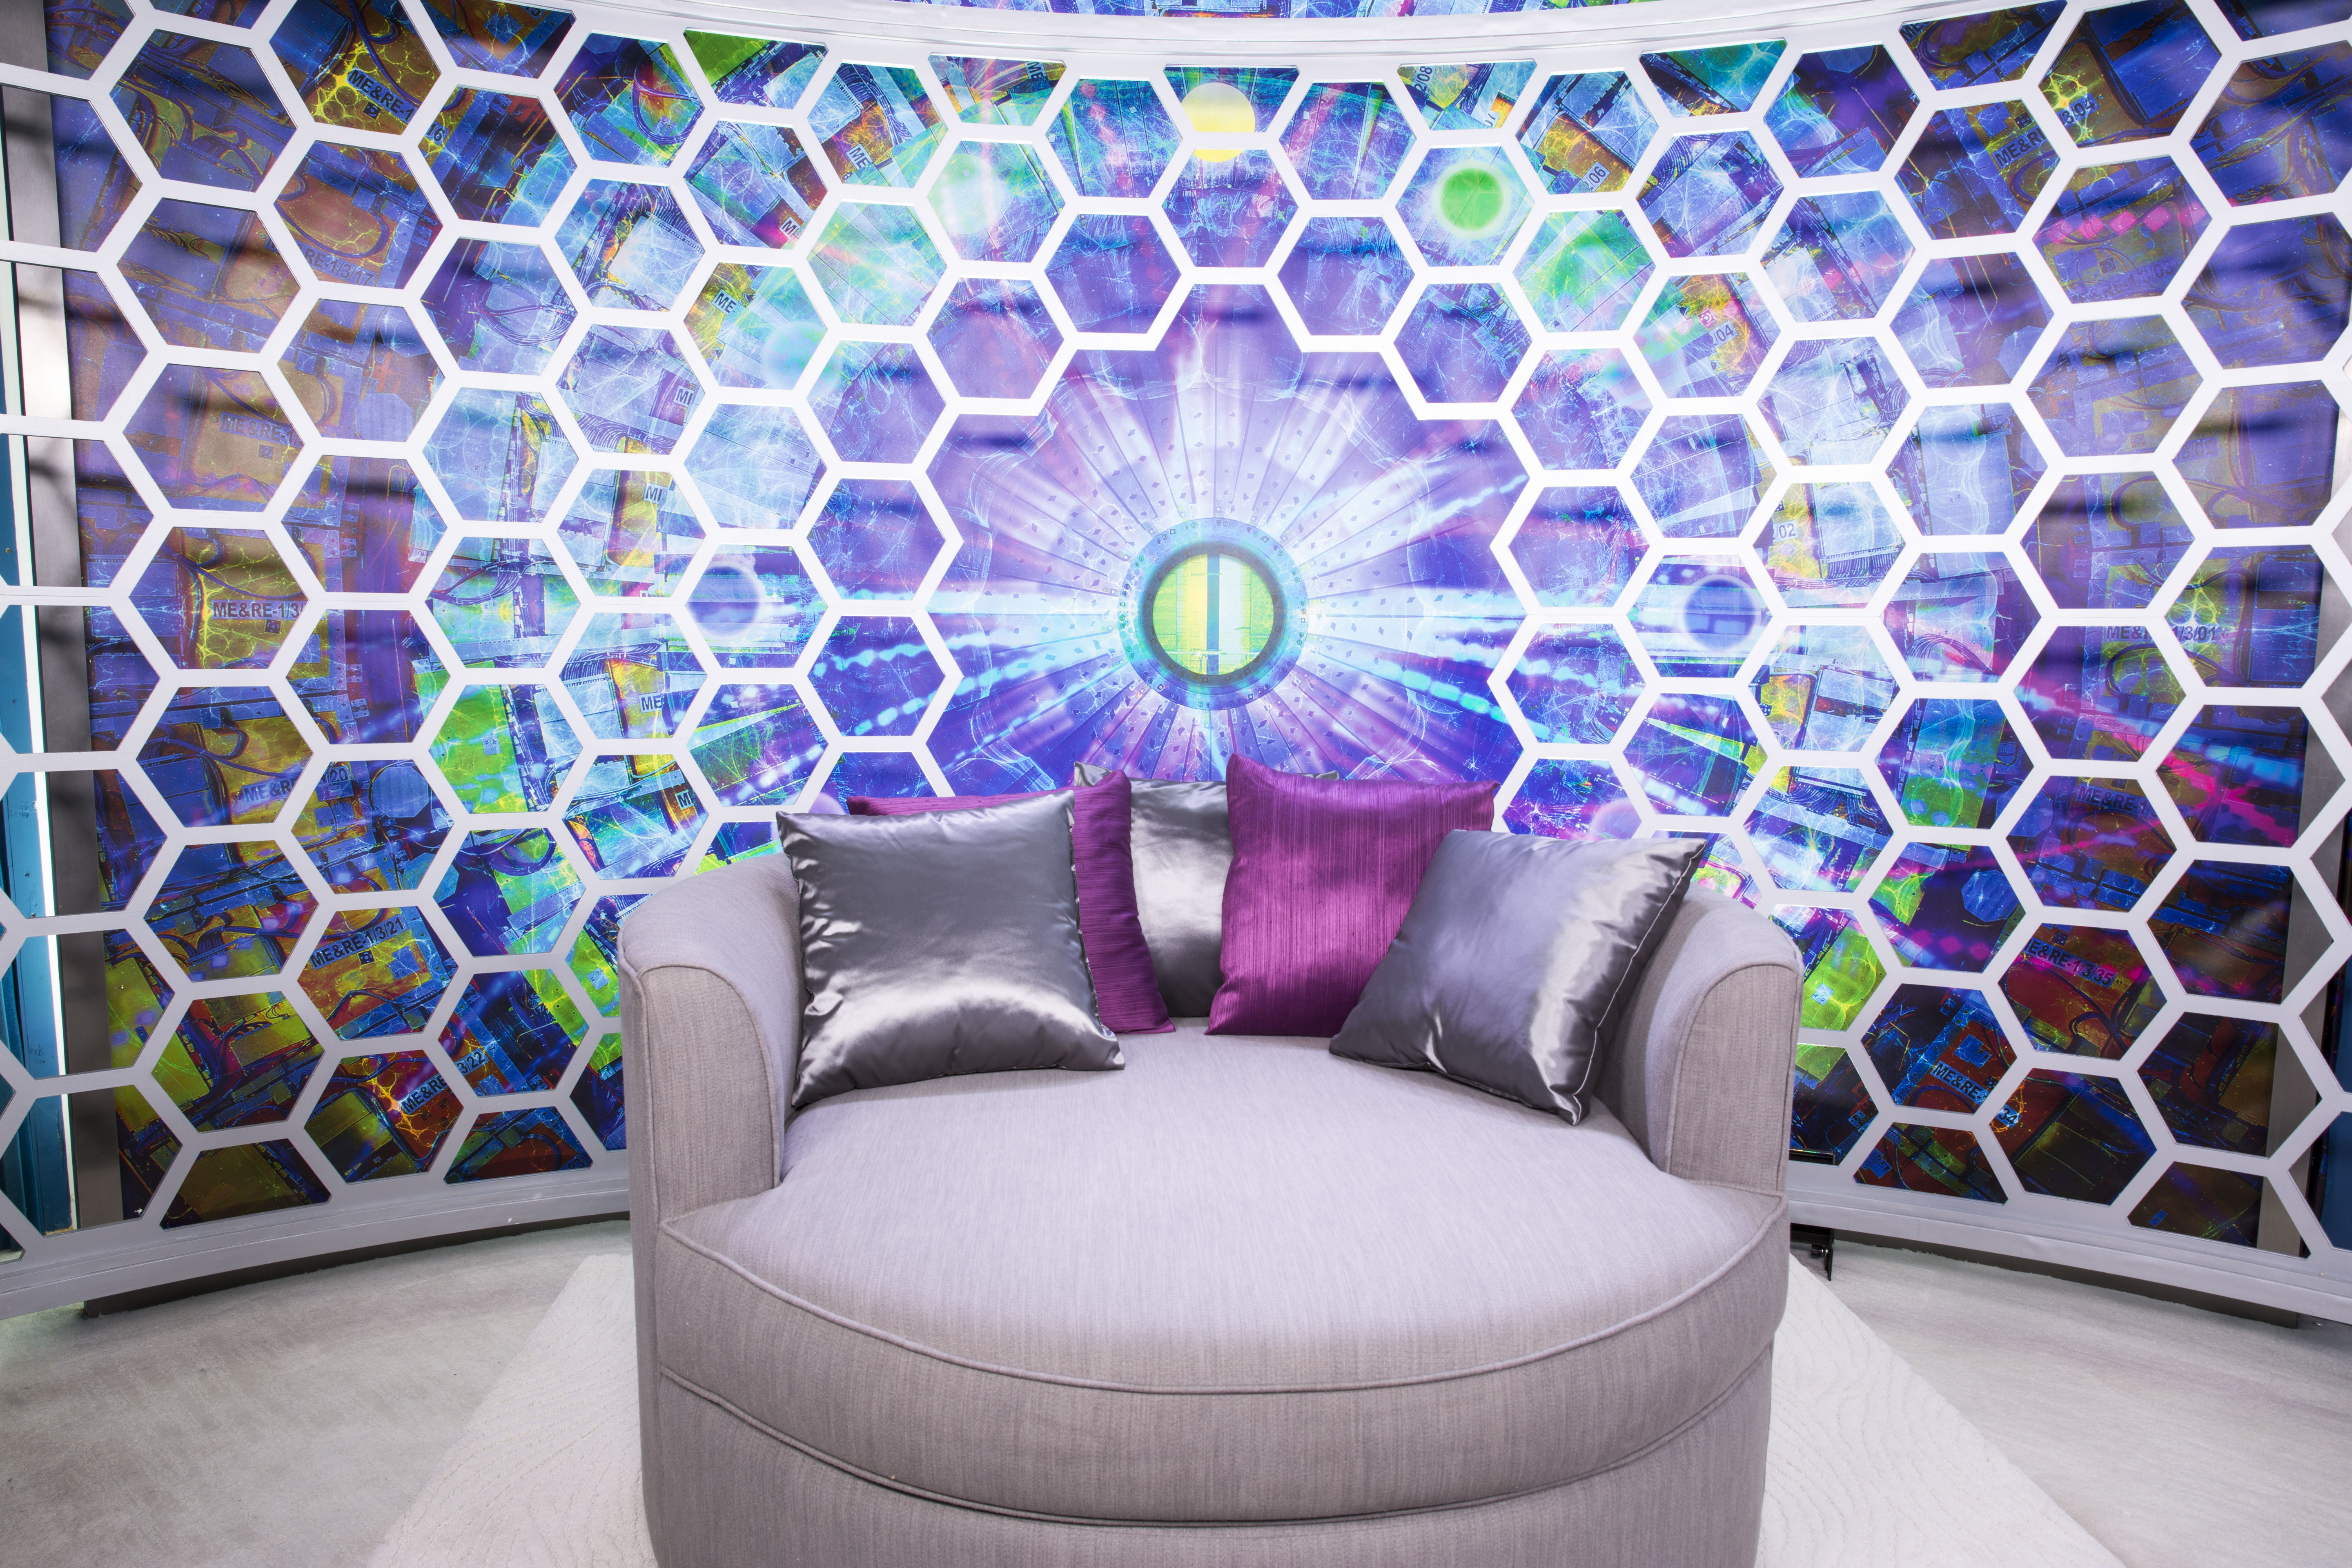 BBCAN: Big Brother Canada reveal Space Odyssey themed house